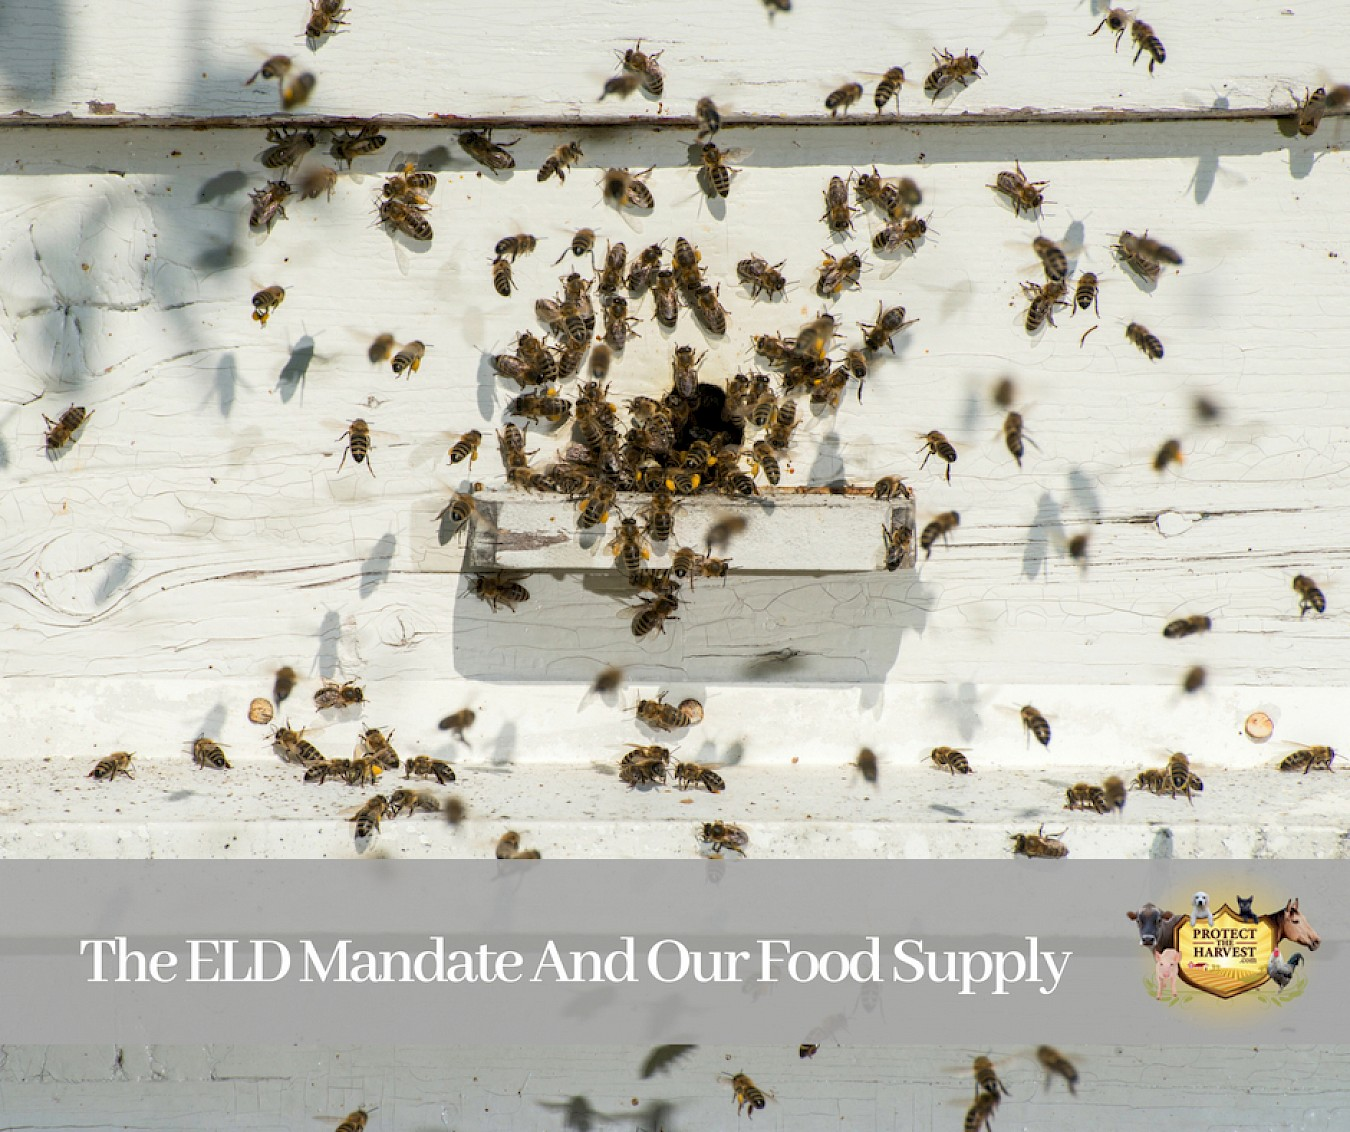 The Eld Mandate And Our Food Supply